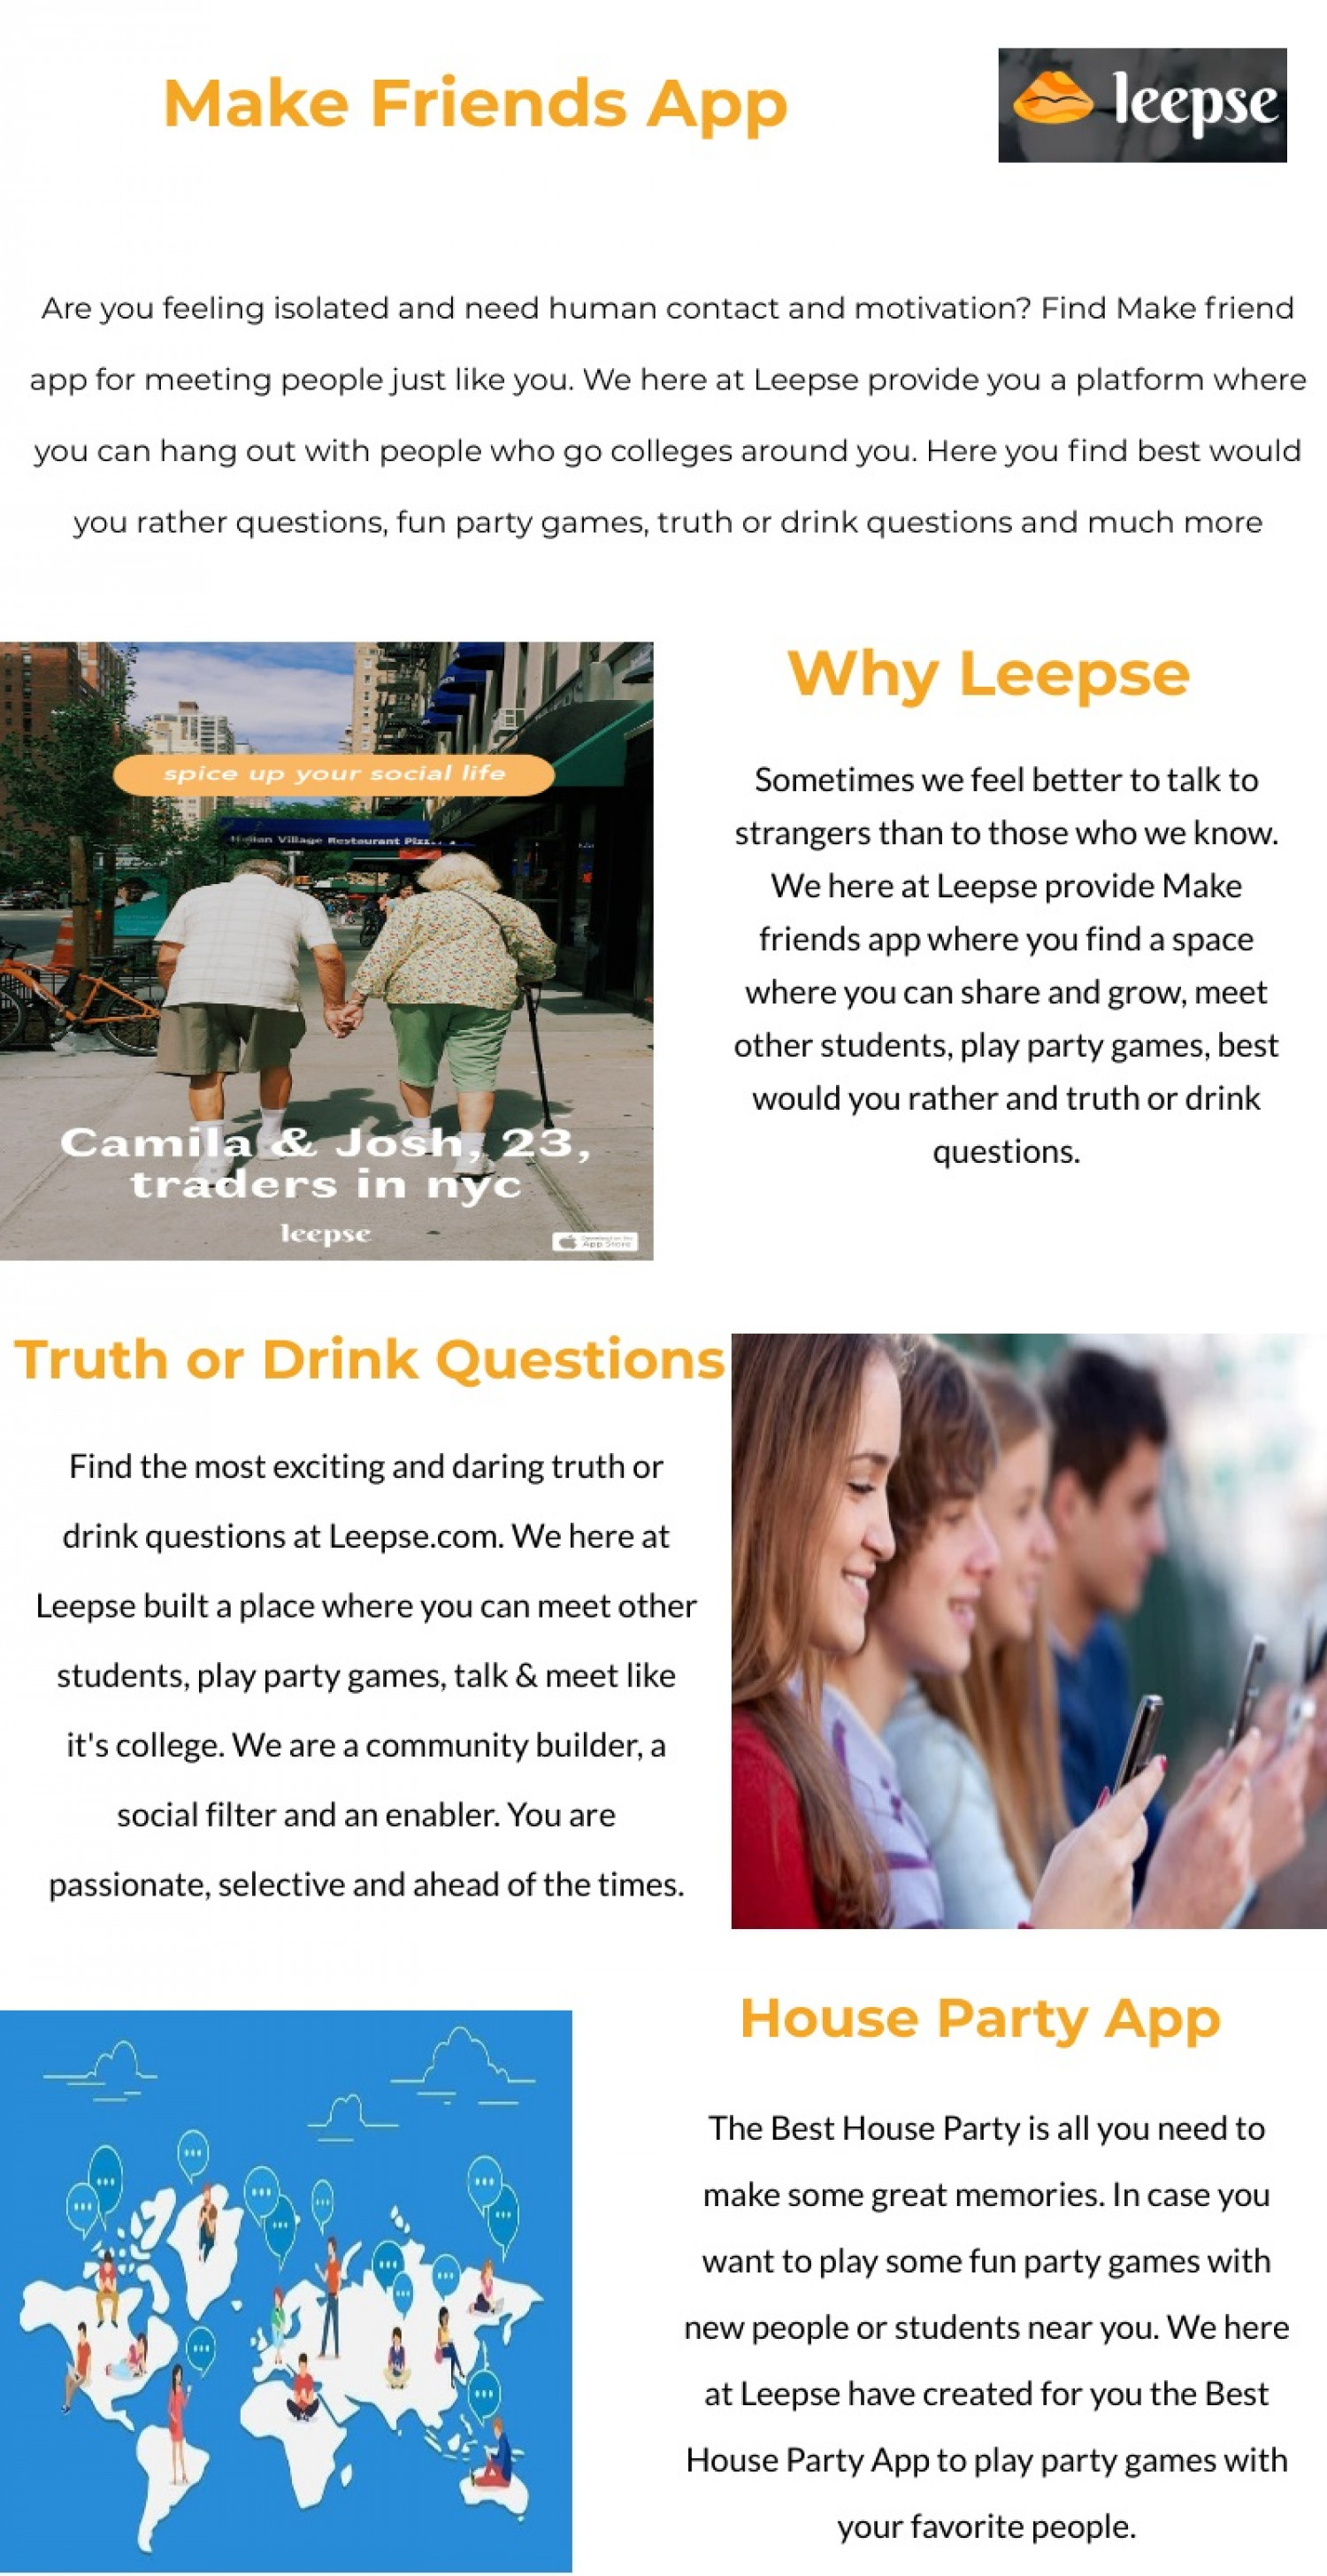 Would You Rather Game | Meet Other Students| Leepse Infographic